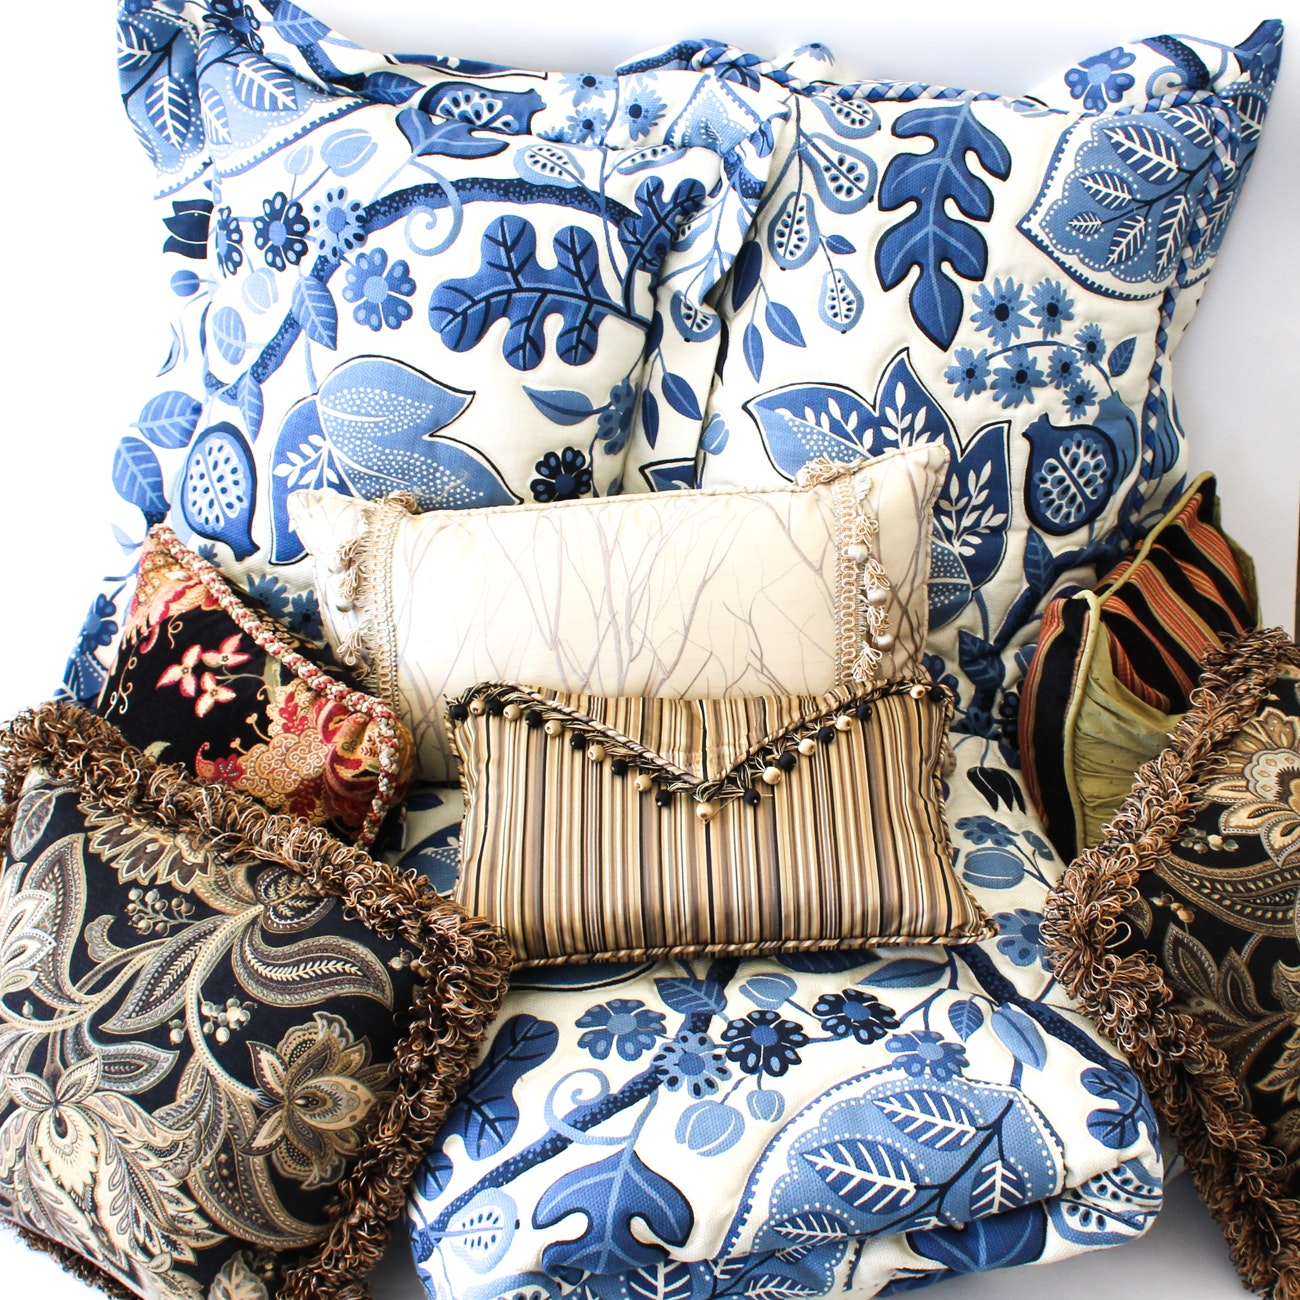 Assorted Bedding and Throw Pillows